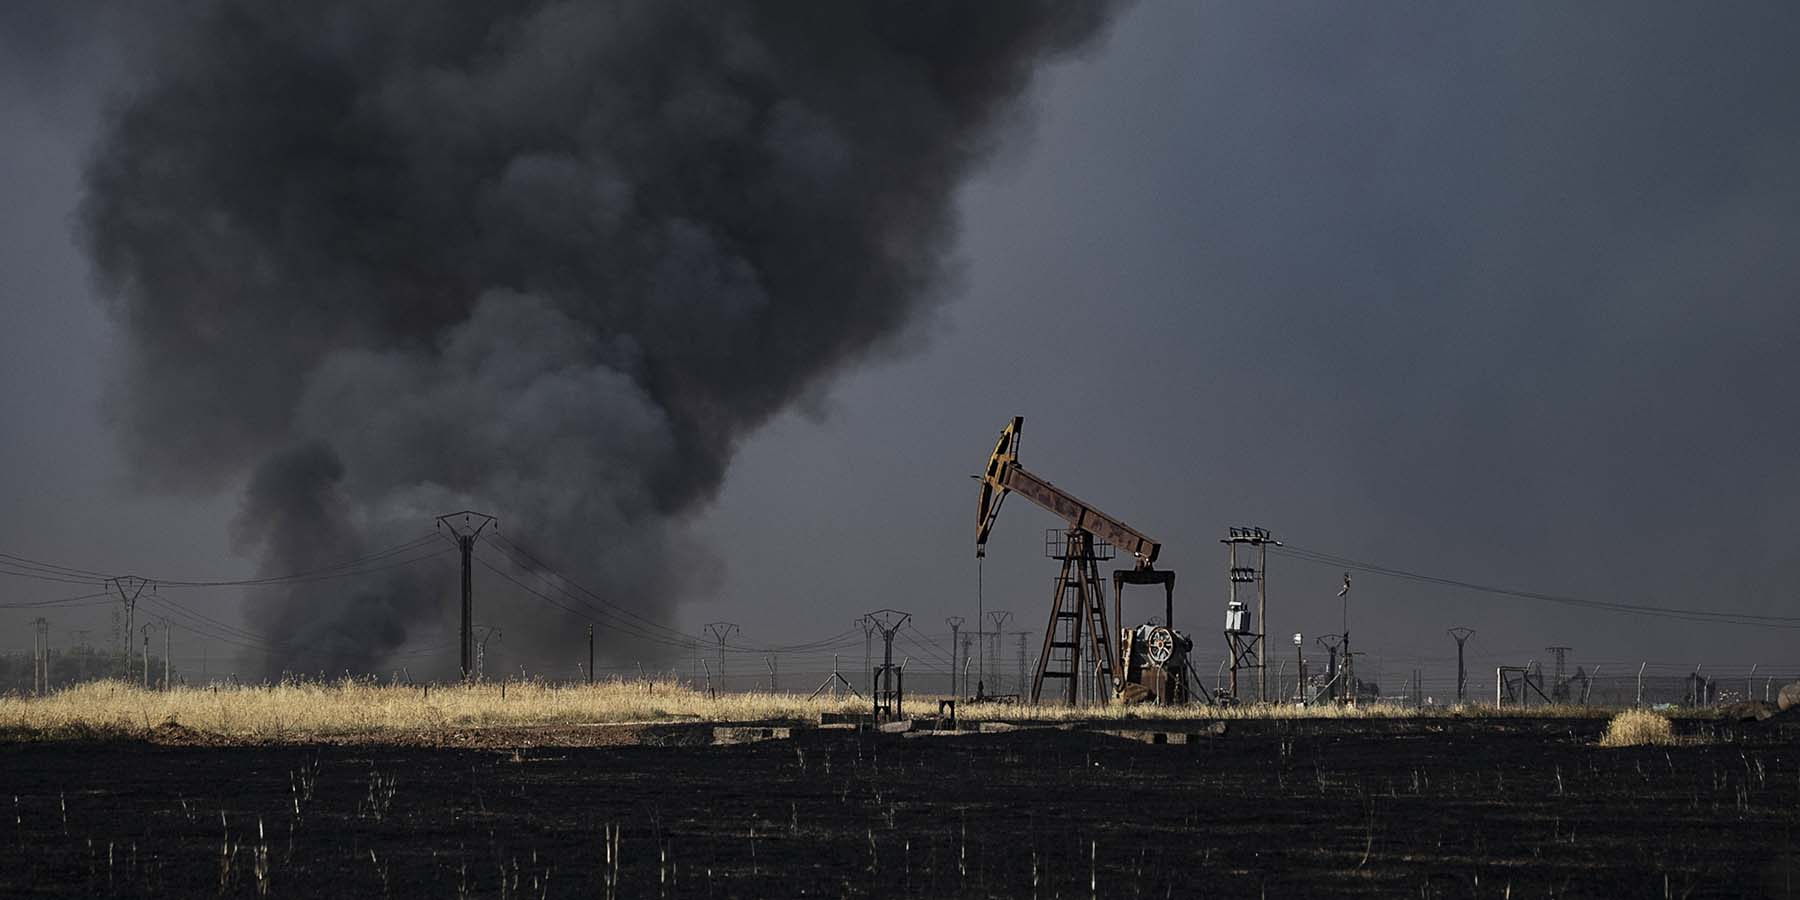 People battle a blaze next to an oil well in a field near al-Qahtaniyah, in the Hasakeh province, close to Syria's border with Turkey on June 10.